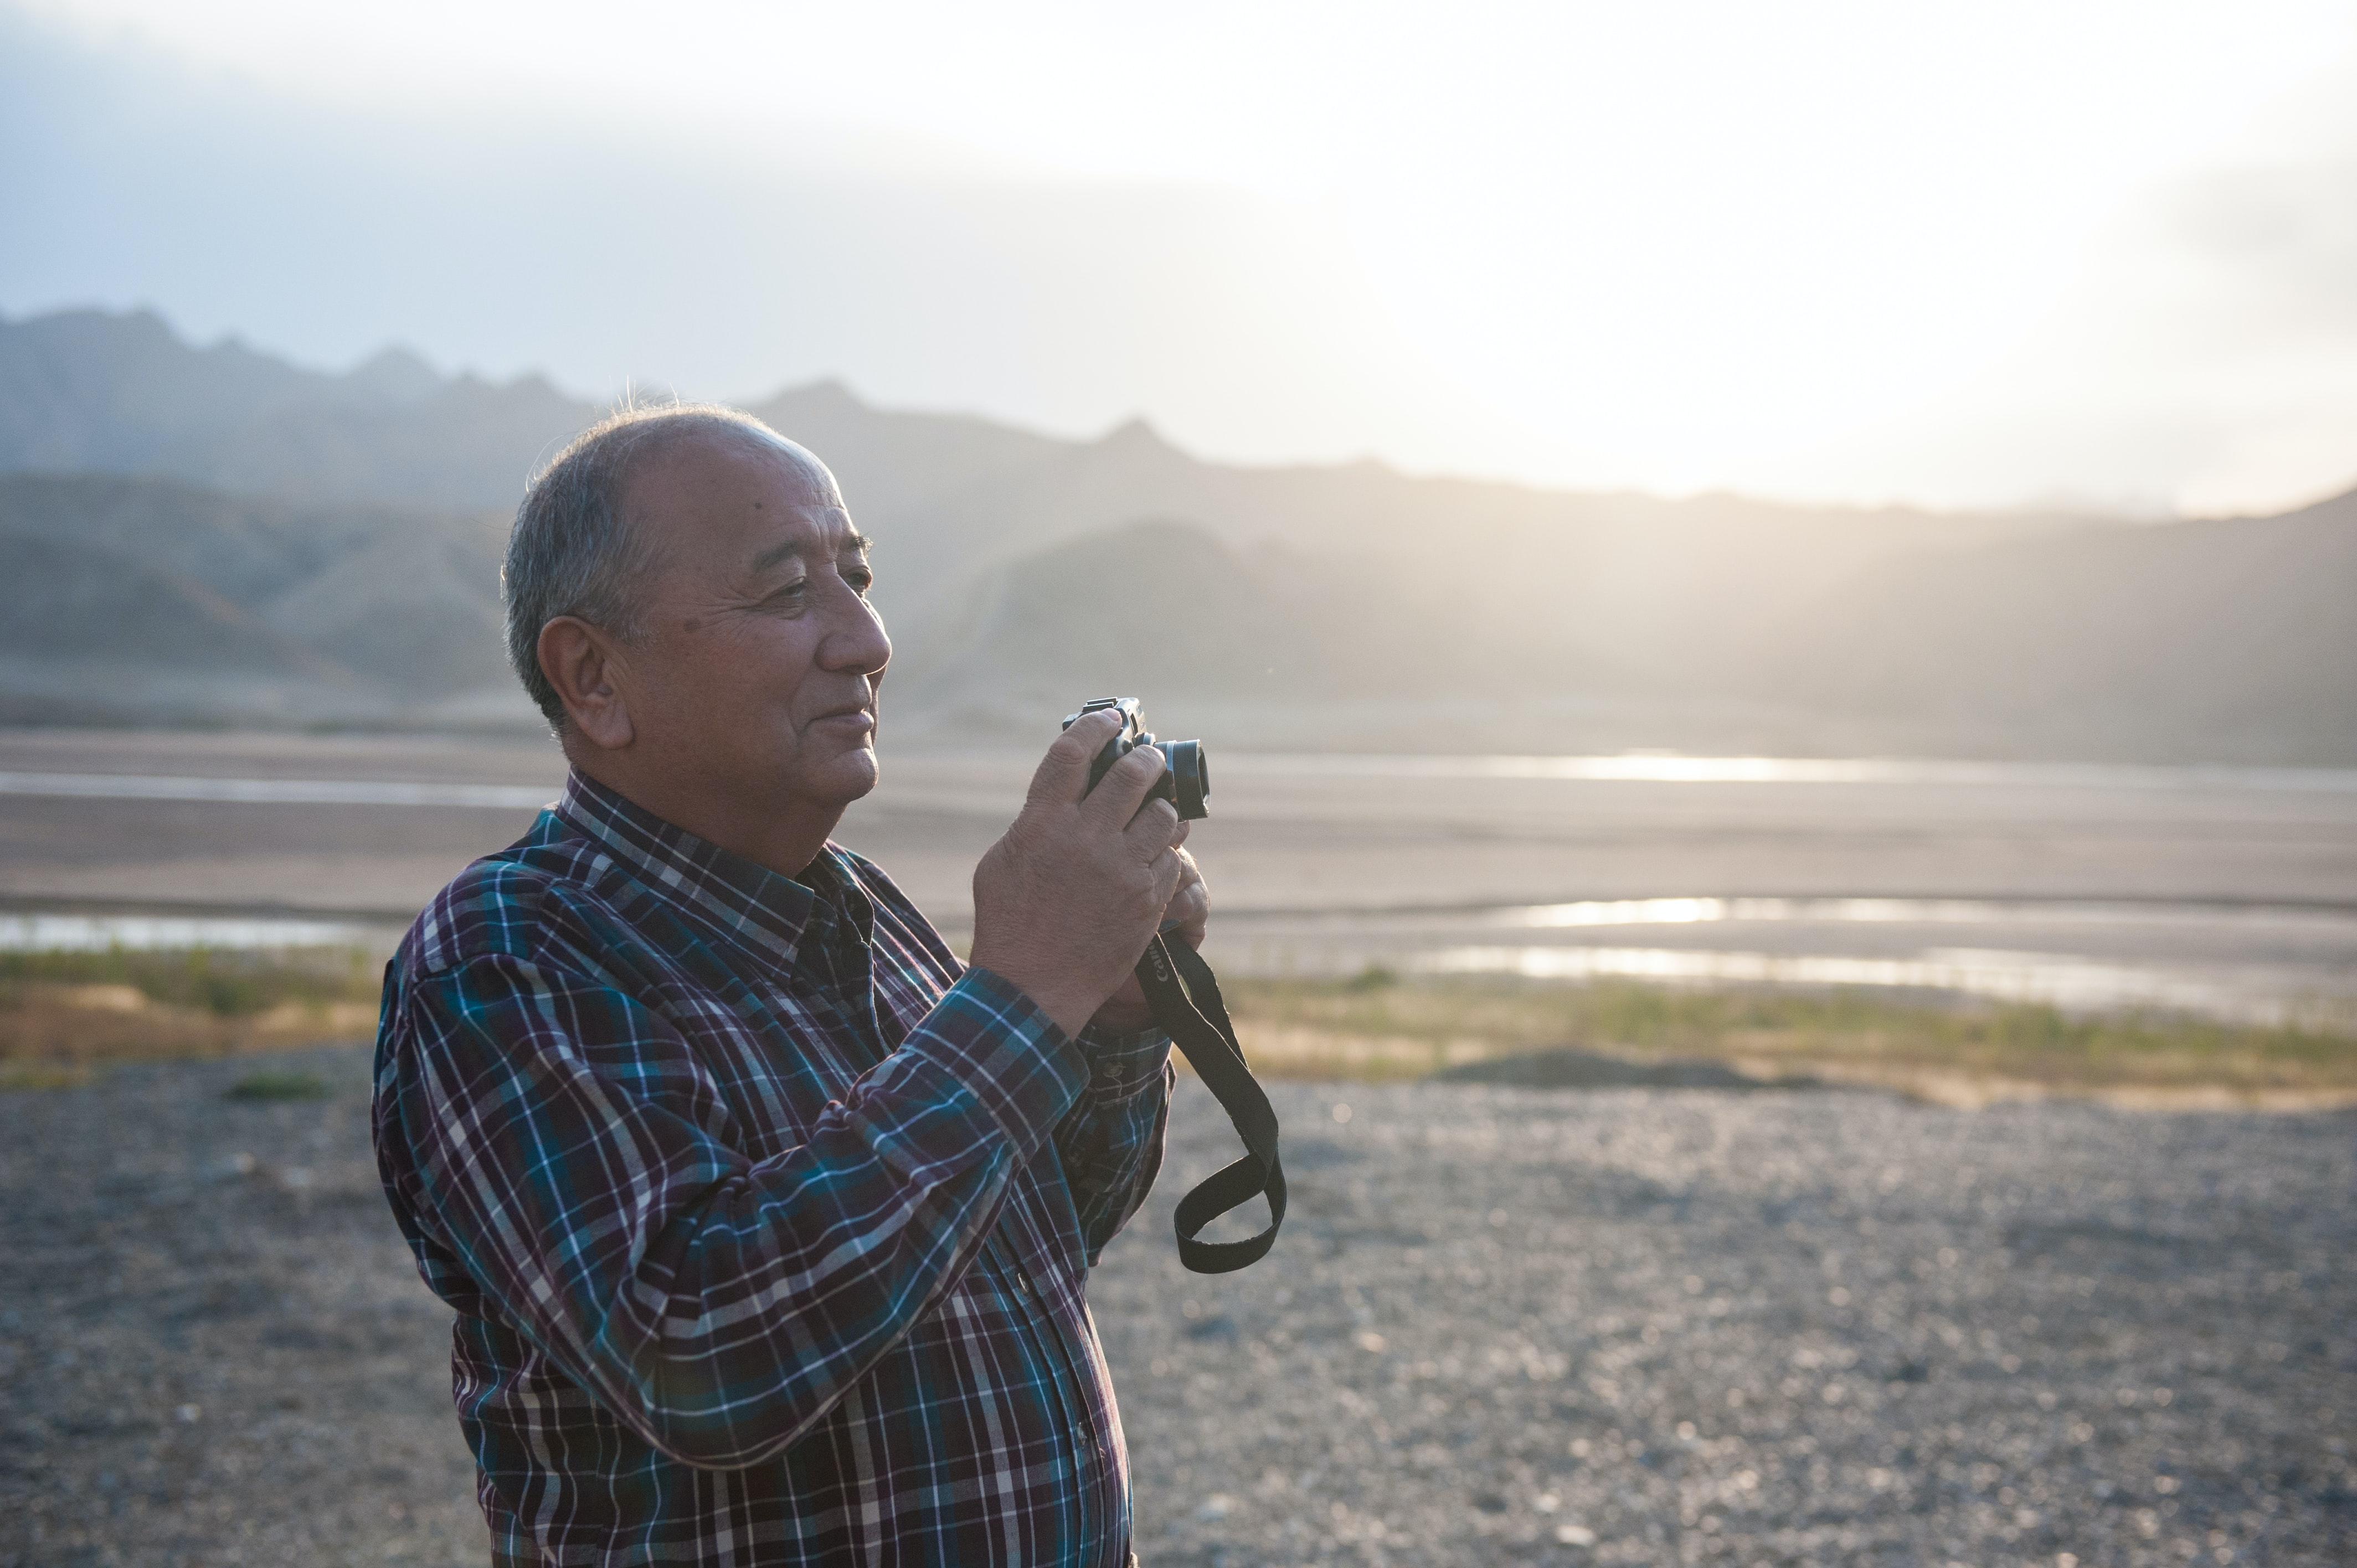 man holding camera standing with mountain background